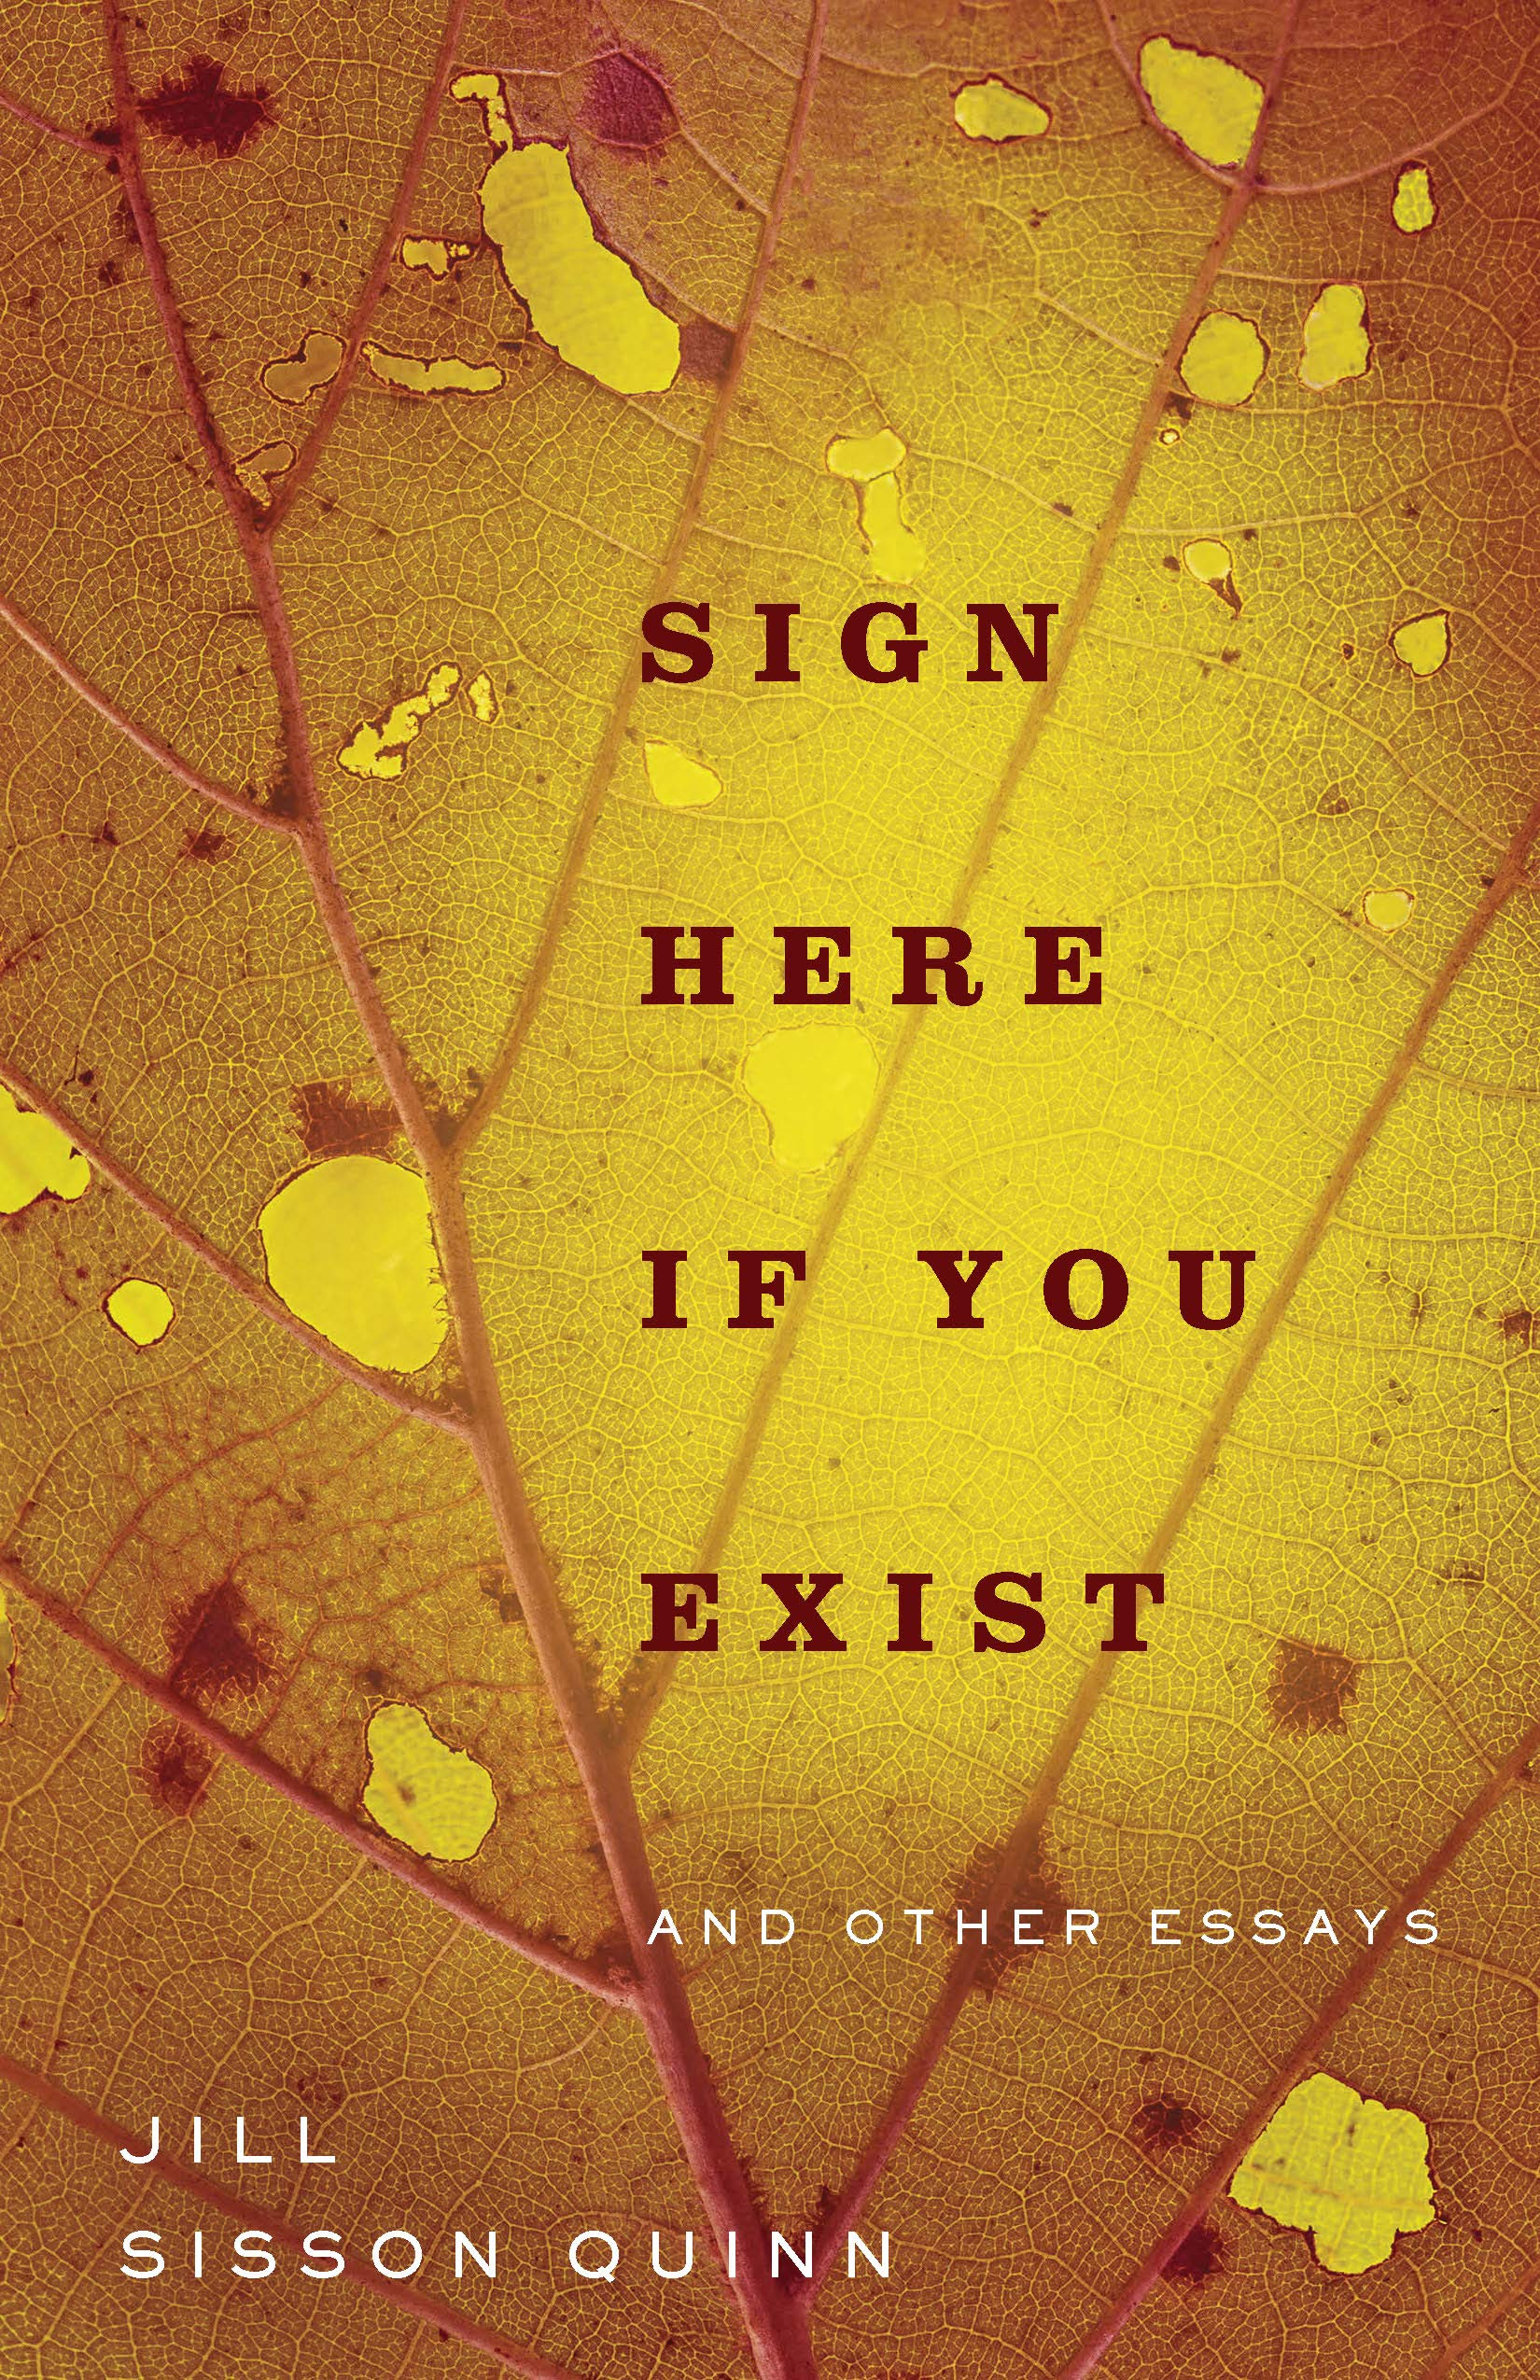 Sign Here If You Exist and Other Essays (Non/Fiction Collection Prize)